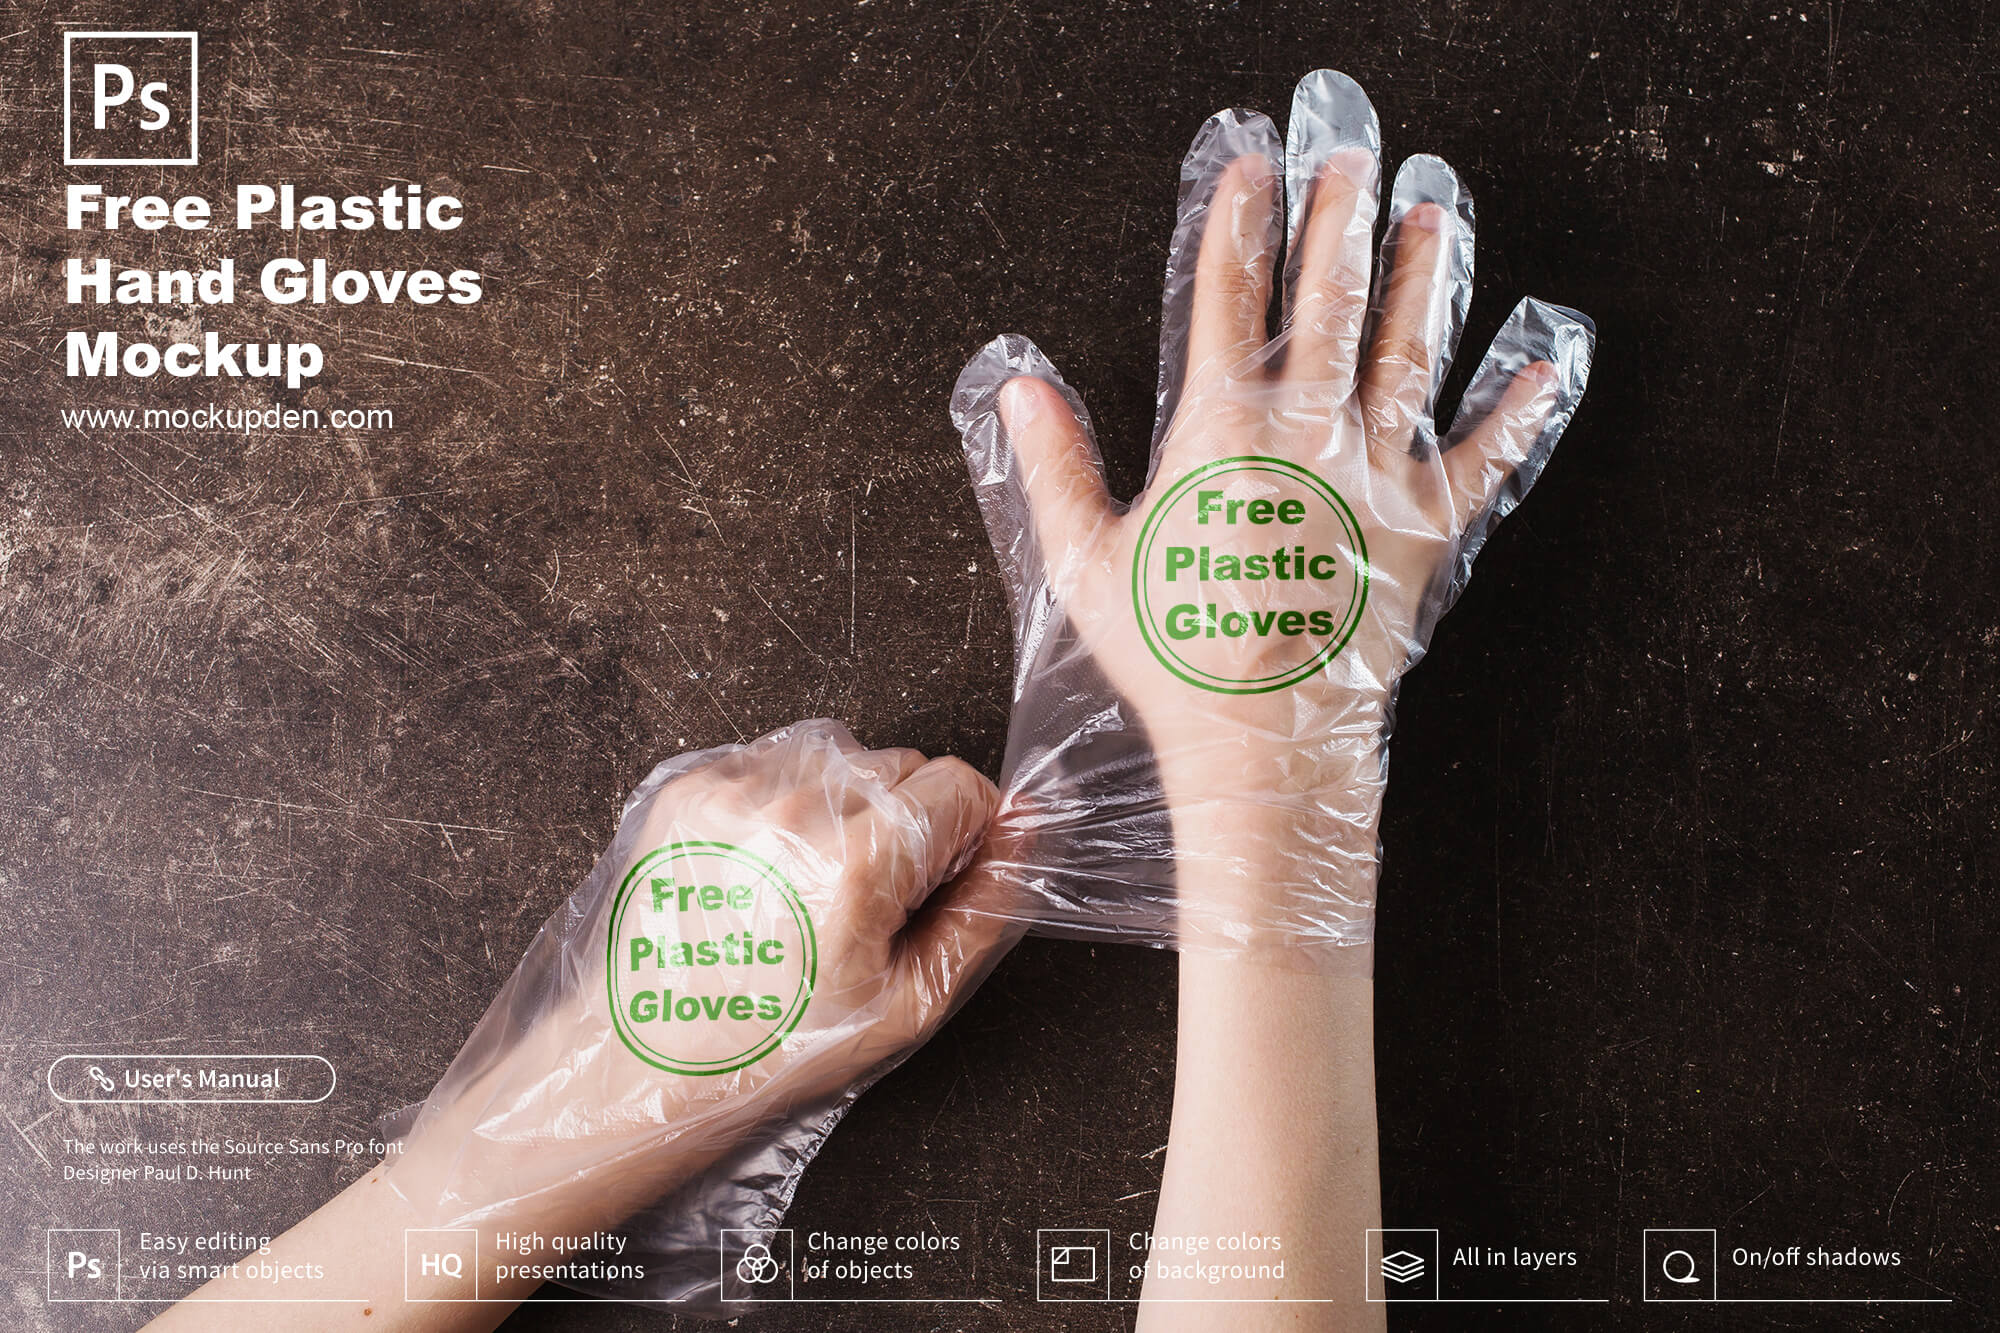 Free Plastic Hand Gloves Mockup PSD Template